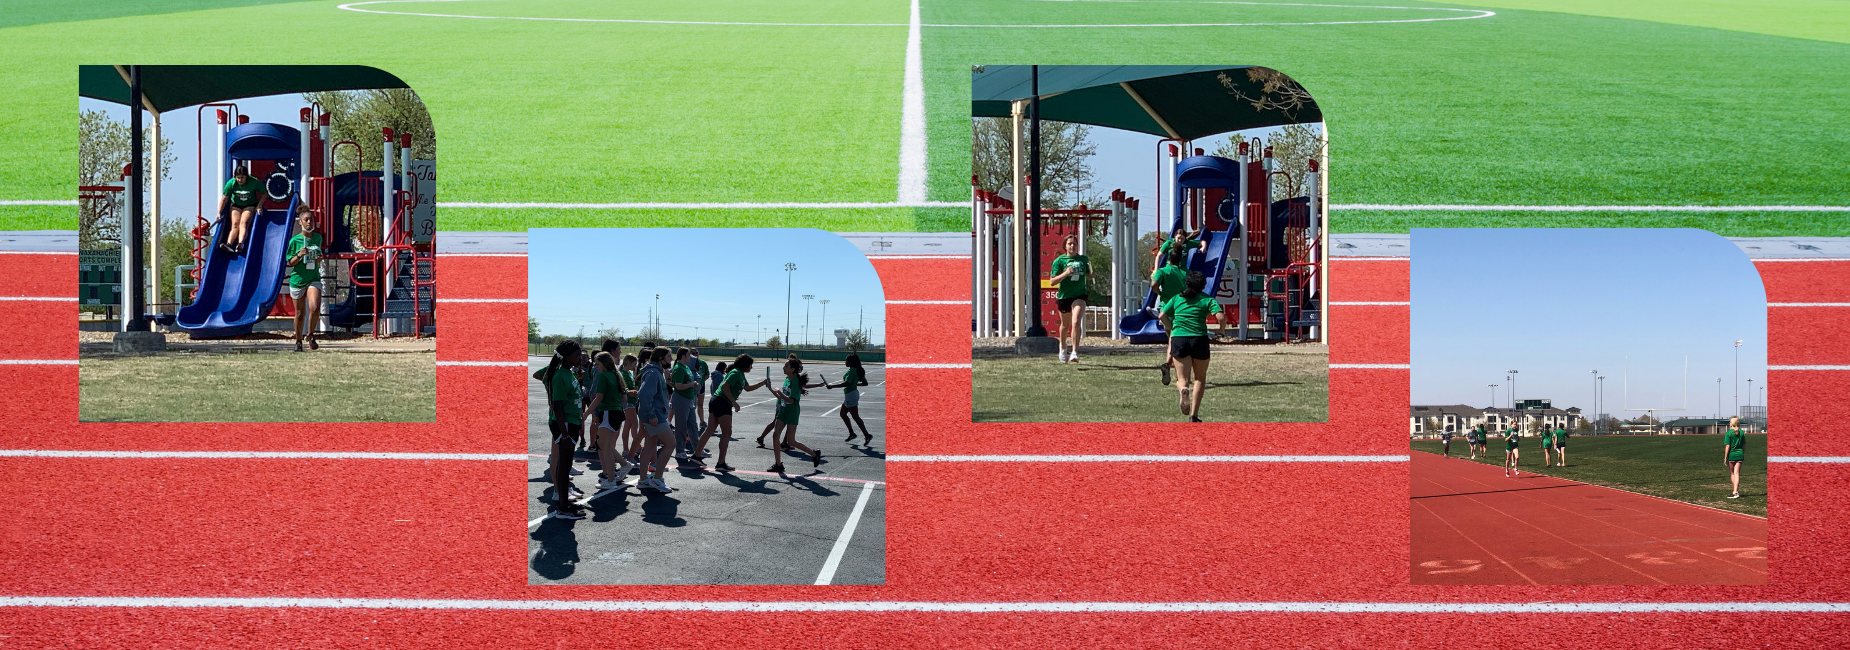 collage of teen girls running relays at the playground